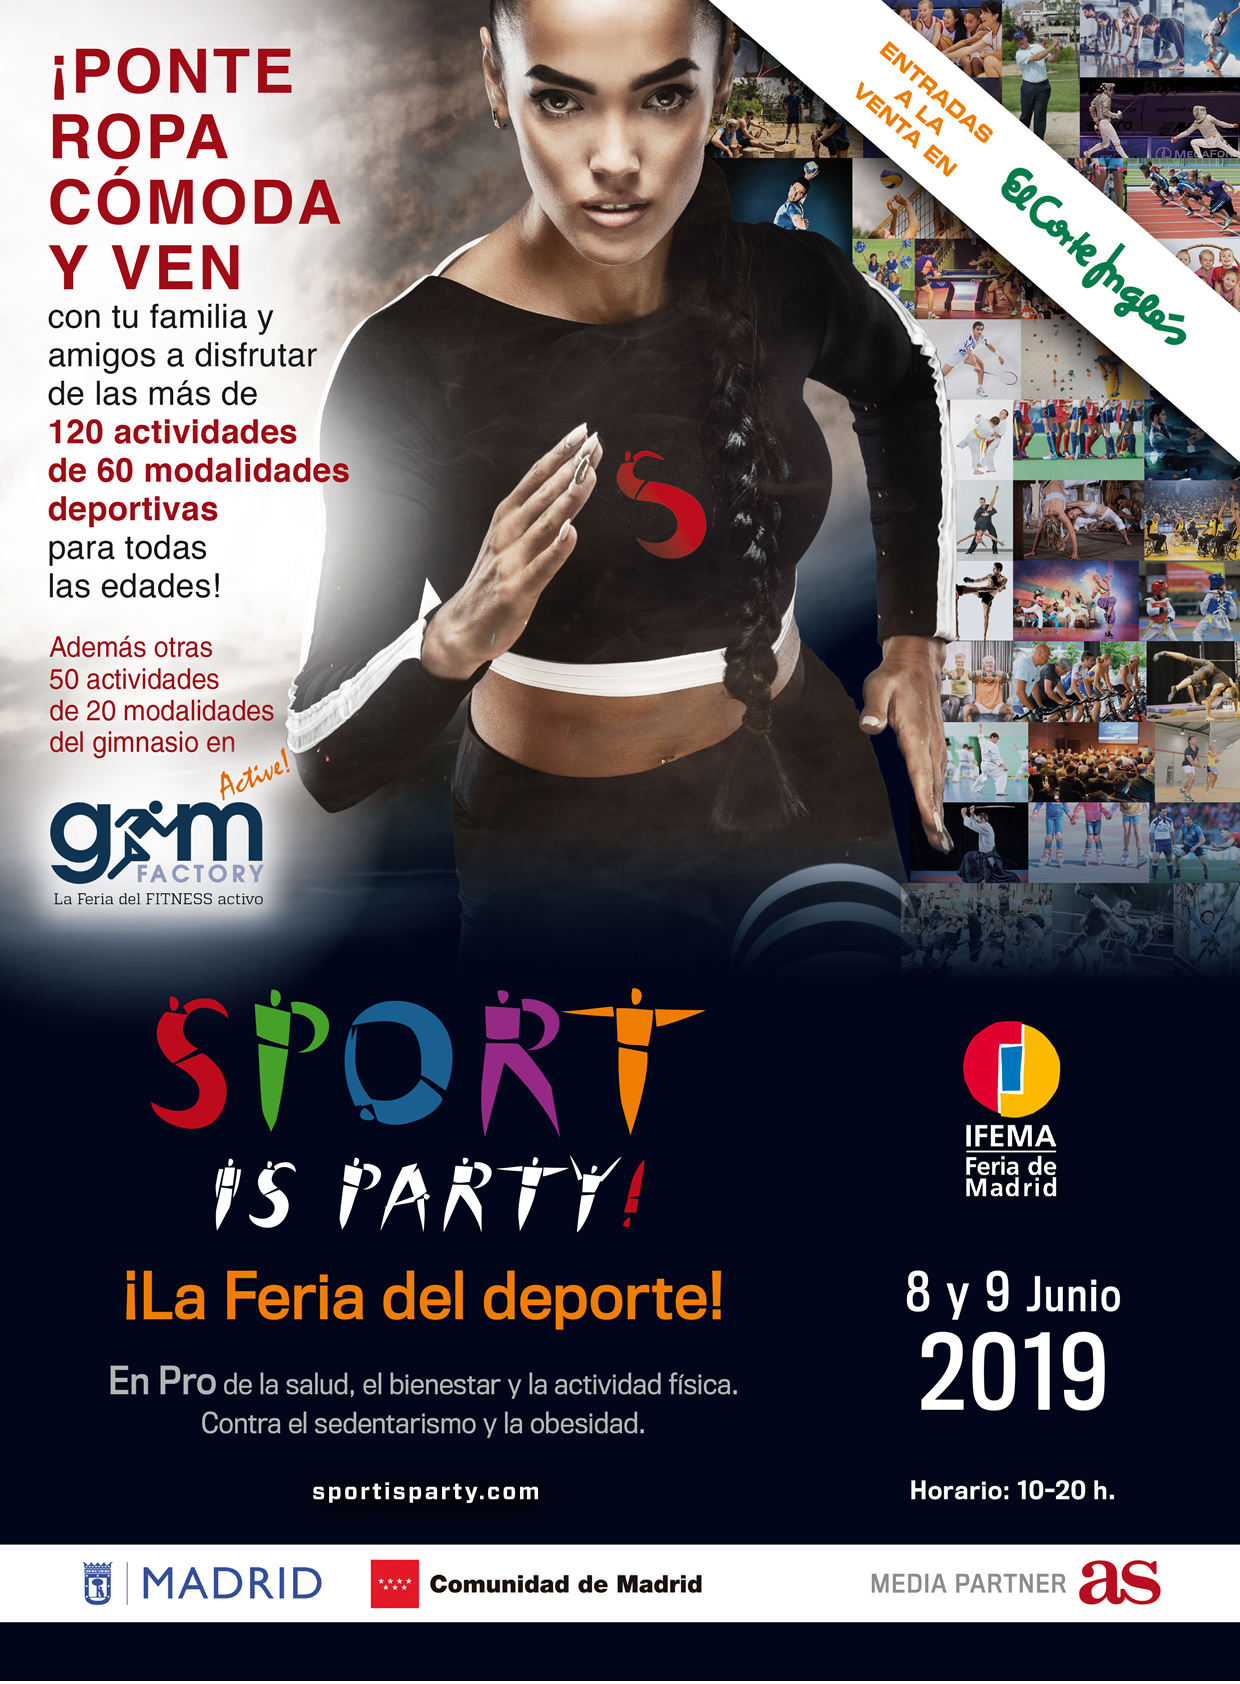 //sportisparty.com/wp-content/uploads/2019/05/cartel-sip.jpg